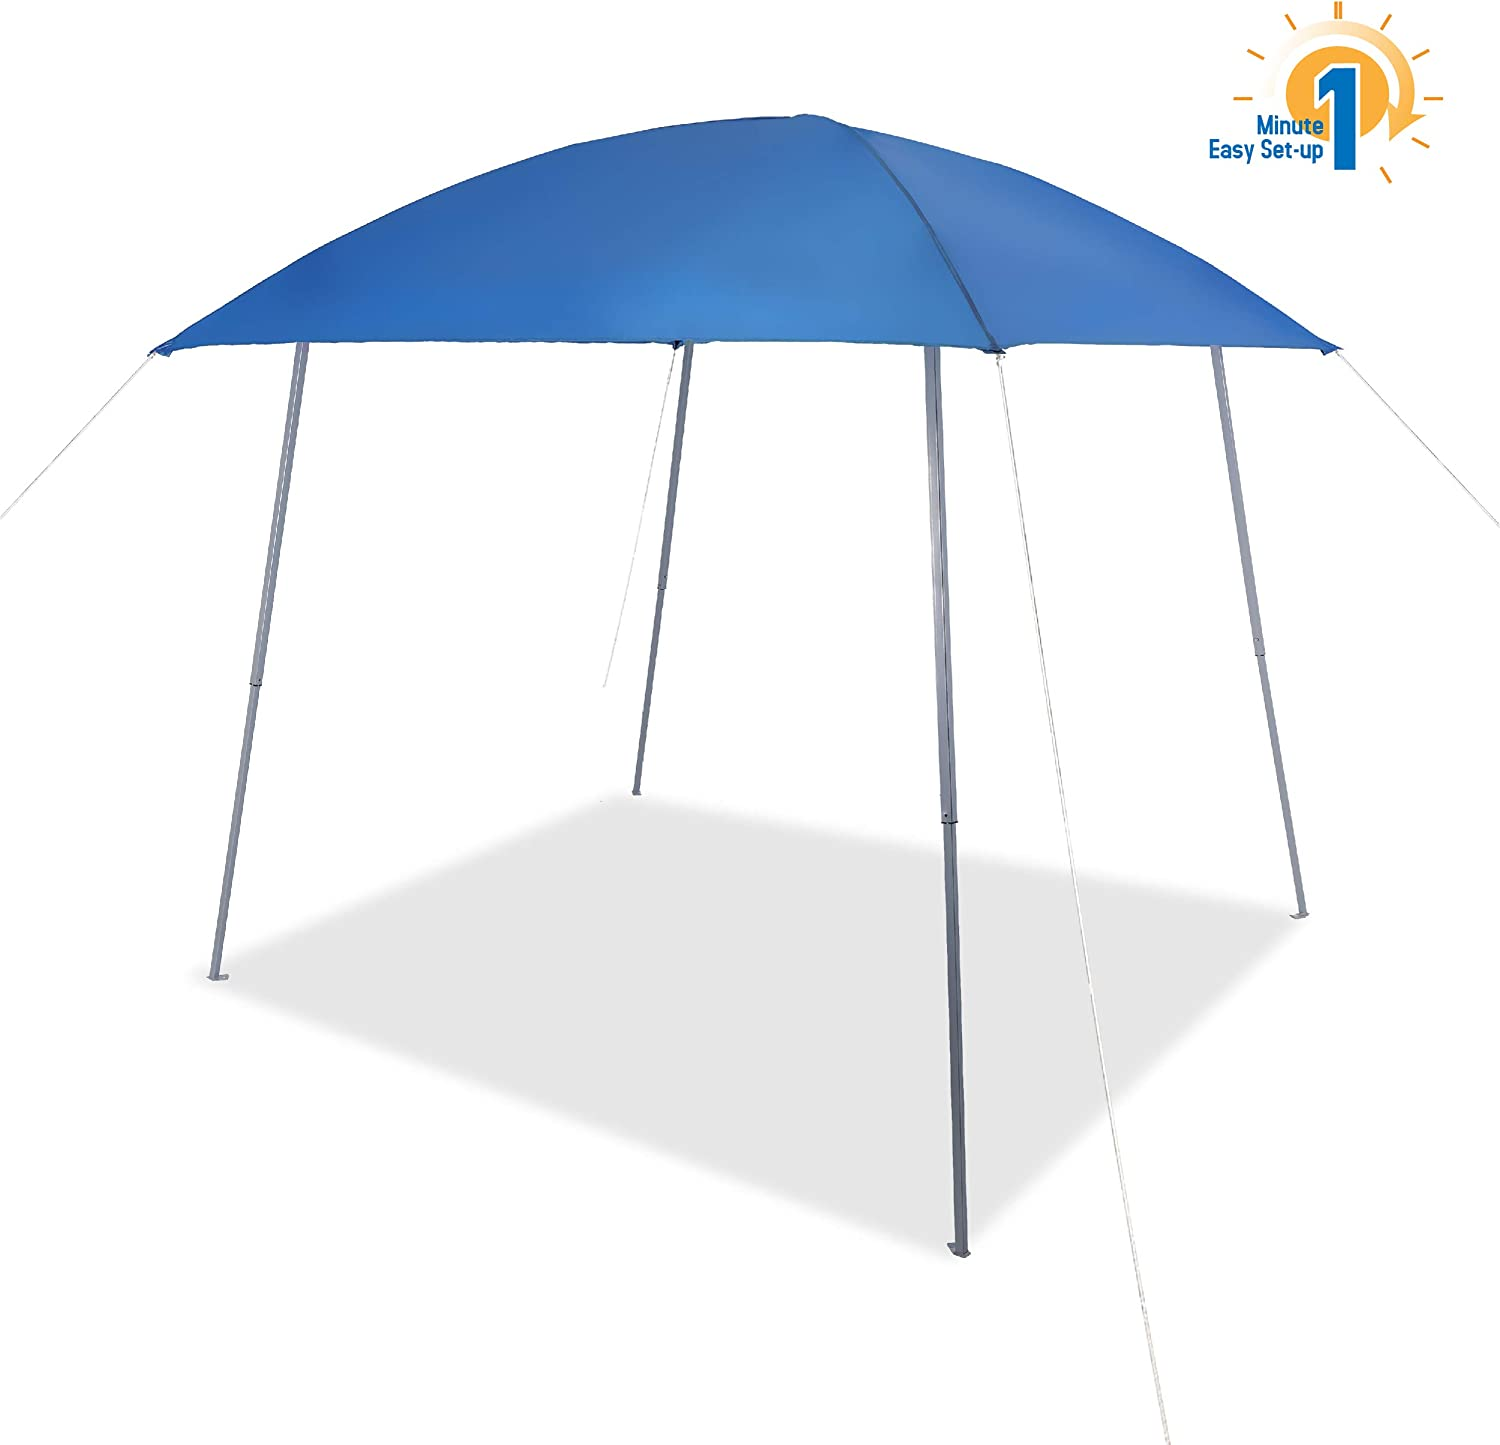 Amazon Com Phi Villa Pop Up Slant Leg Canopy Tent Lightweight For Camping Beach And Sports 8 X 8 Blue Garden Outdoor